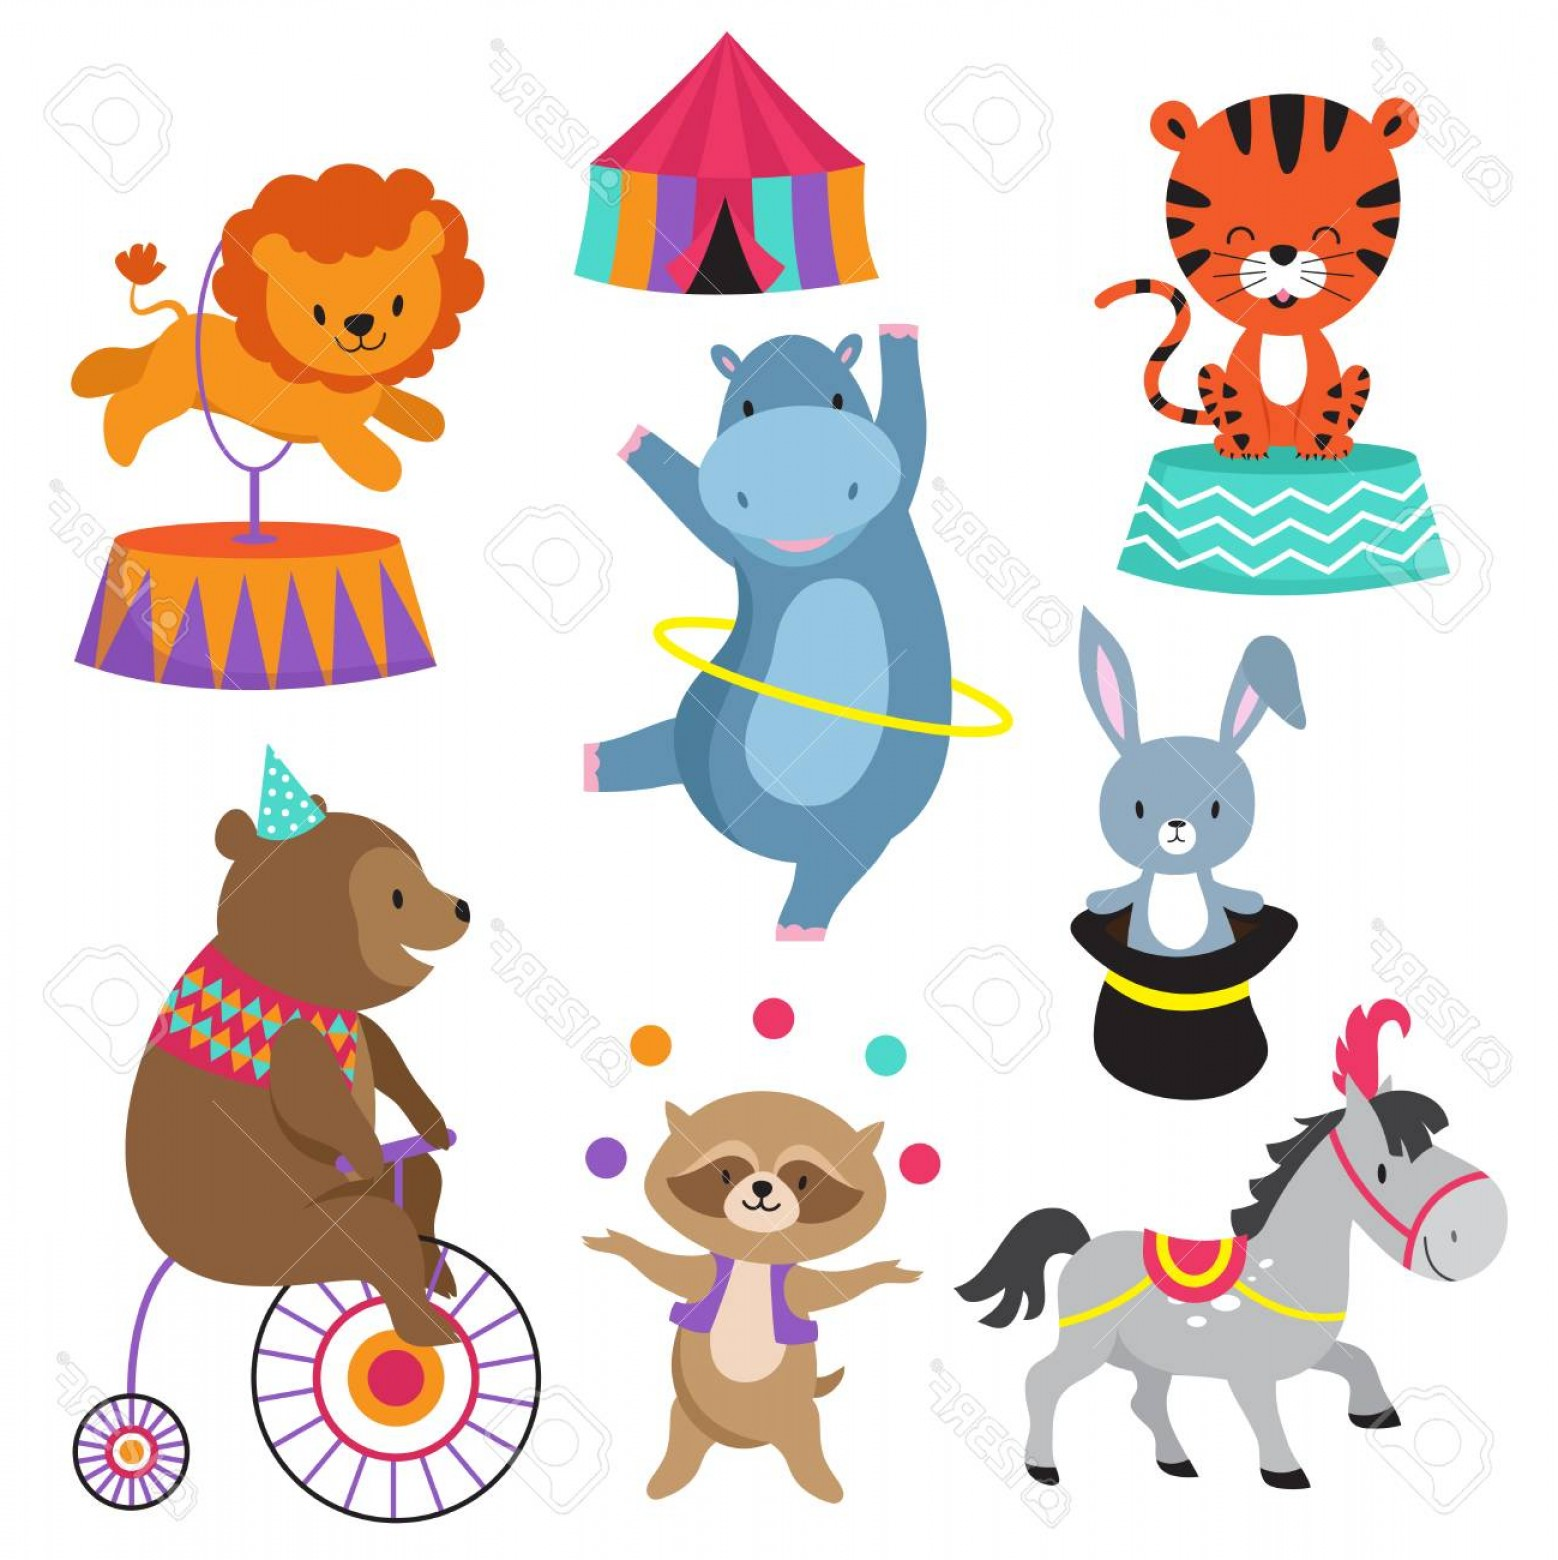 Circus Animals Vector Graphic: Photostock Vector Cartoon Circus Animals For Child Birthday Card Vector Animal In Circus Happy Elephant And Lion Carni